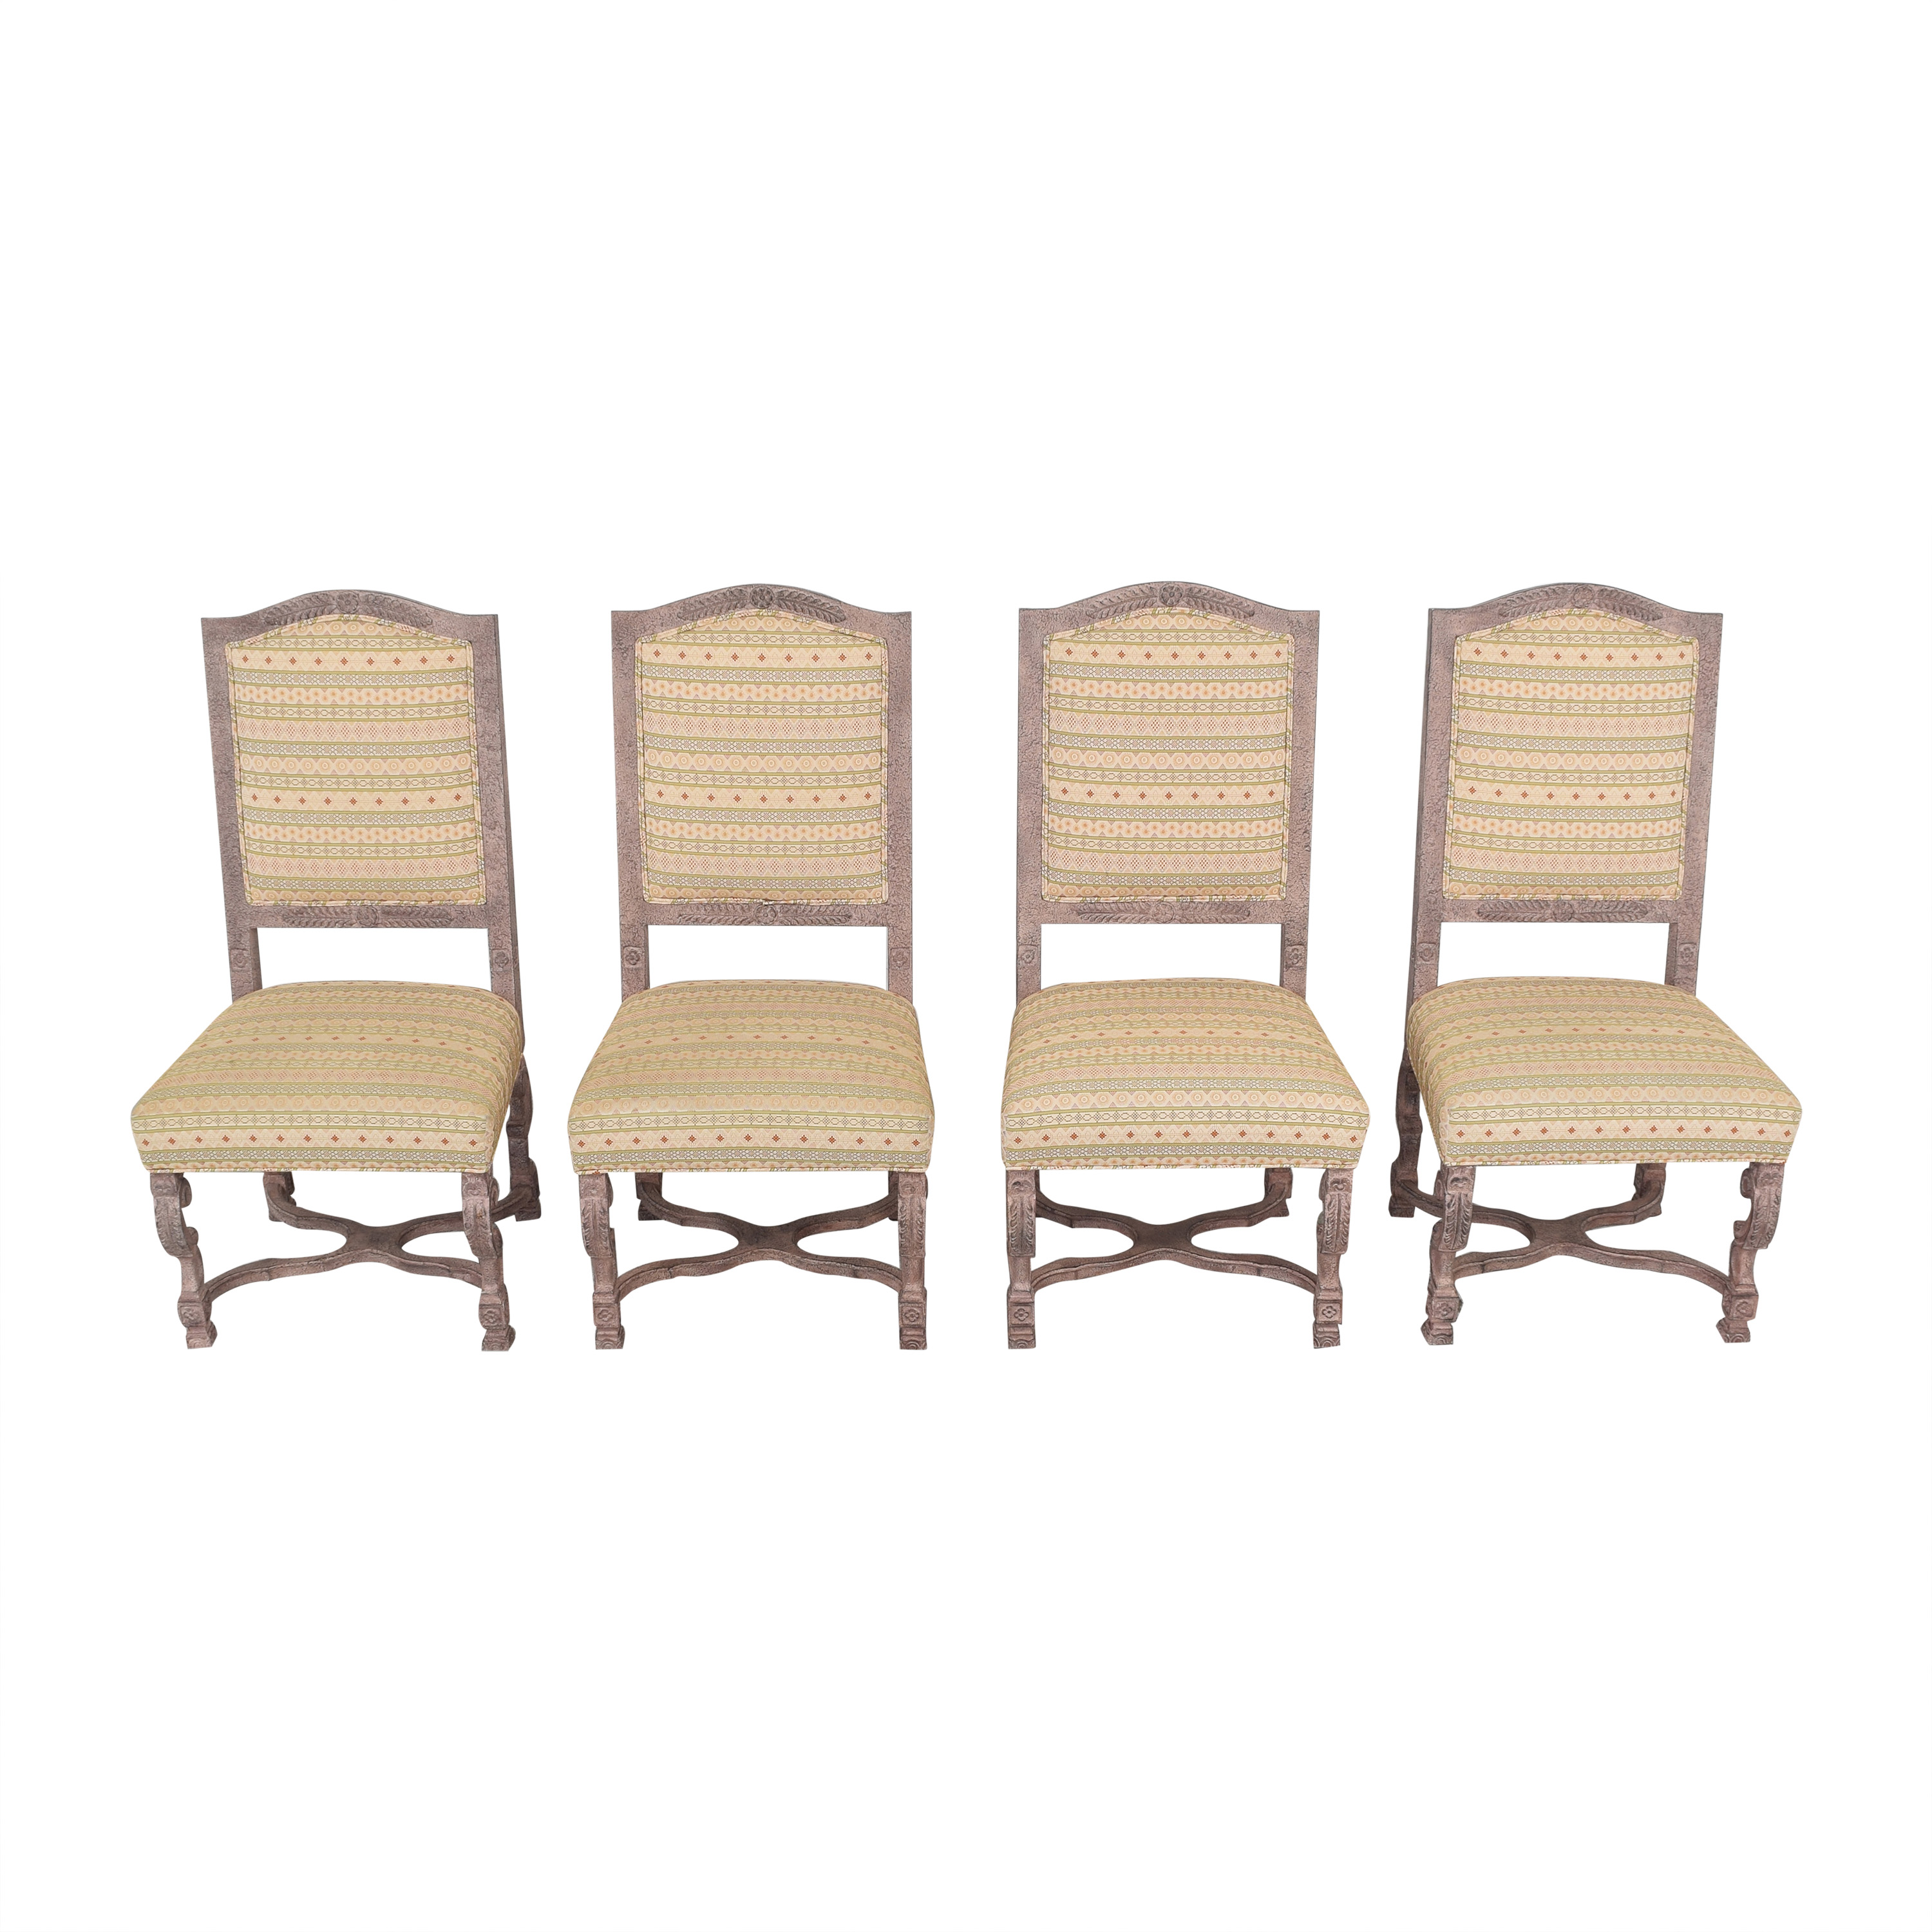 Artistic Frame Artistic Frame Monarque Dining Chairs used